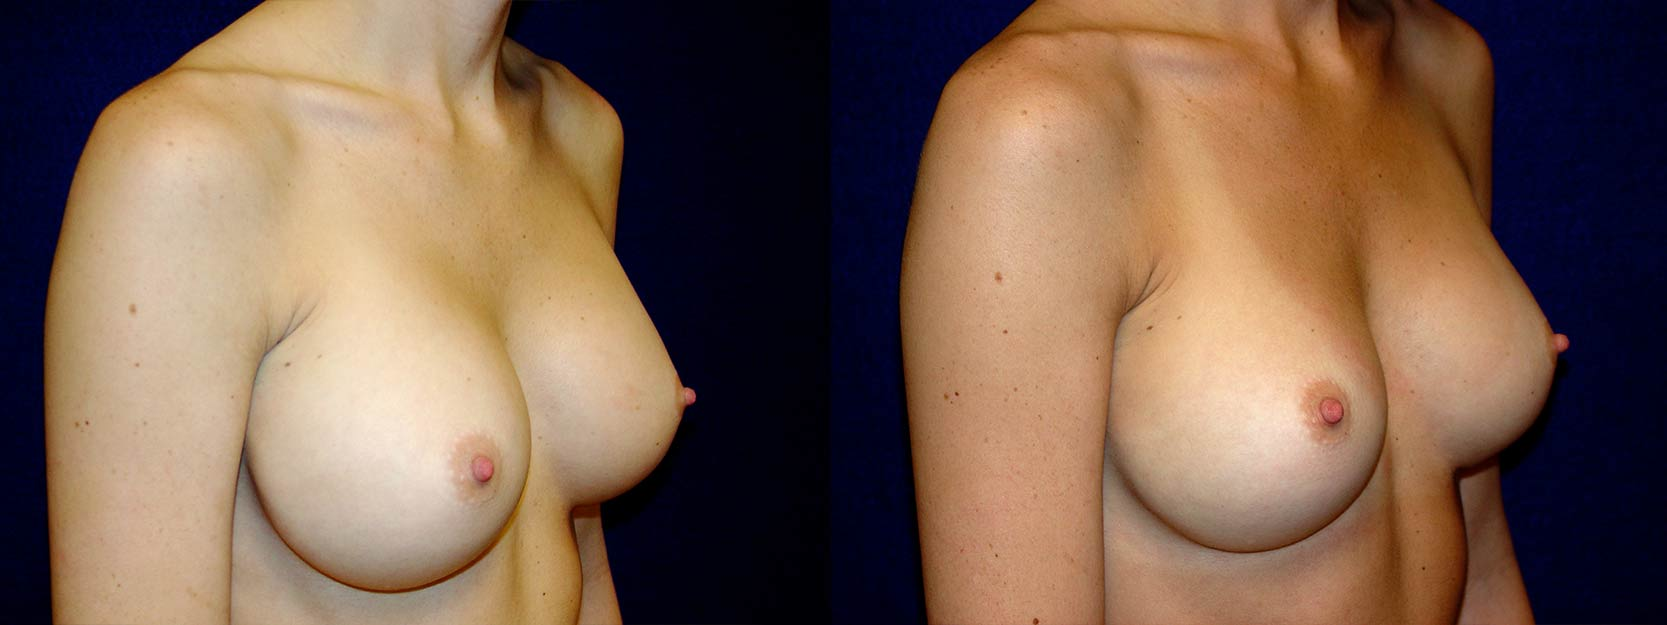 Right 3/4 View - Breast Implant Revision - Silicone Implants